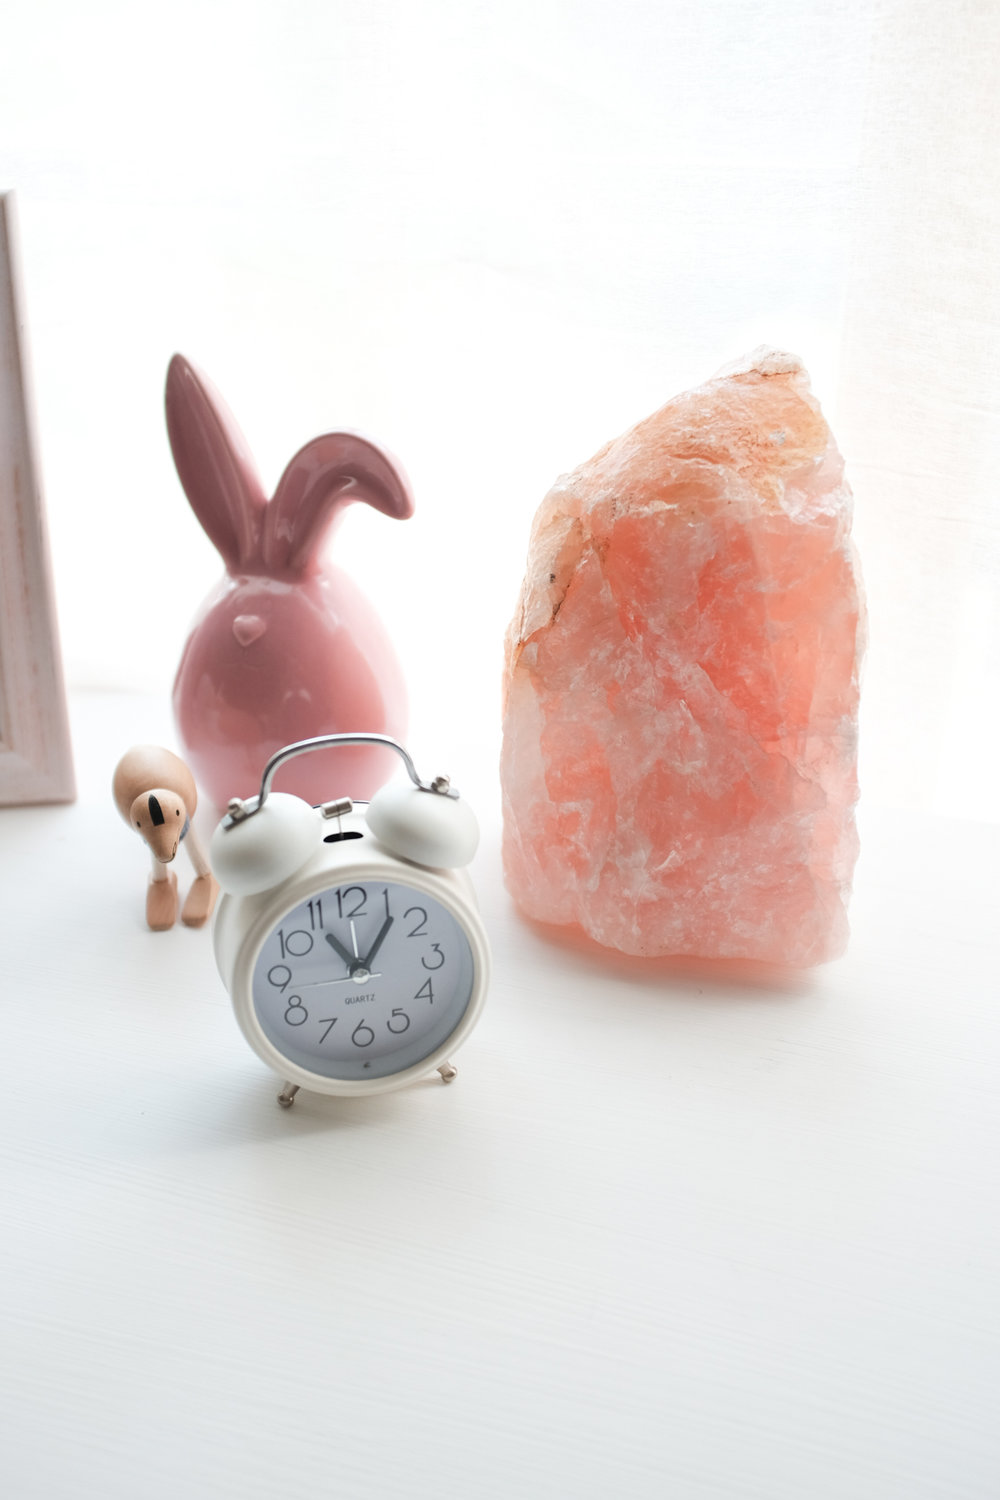 rose quartz lamp nursery baby room south africa citygirlsearching blog night light for baby room